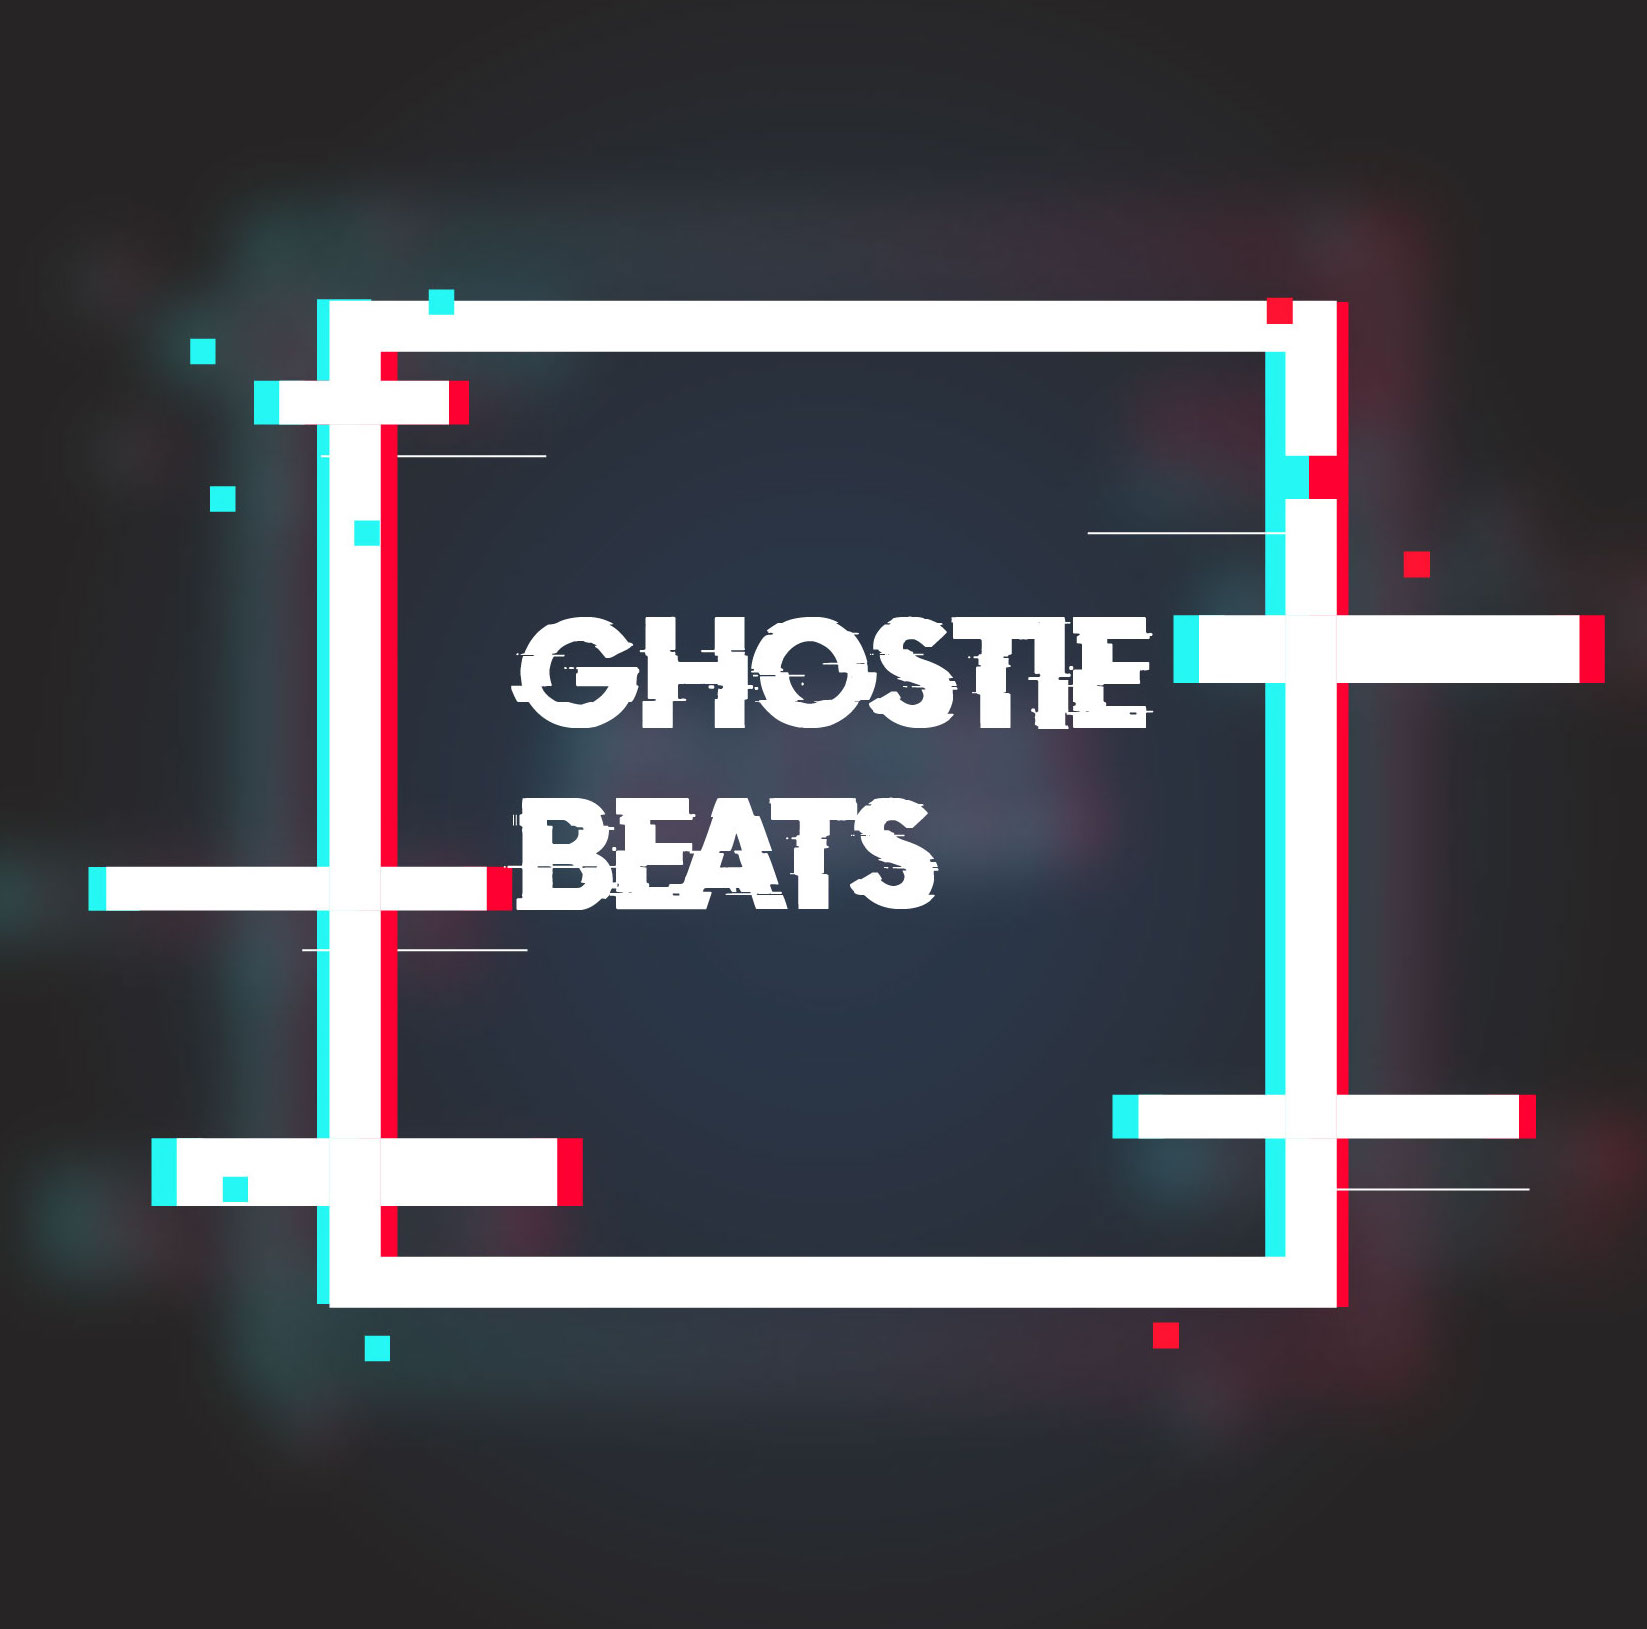 Ghostie beats piratebeats.com